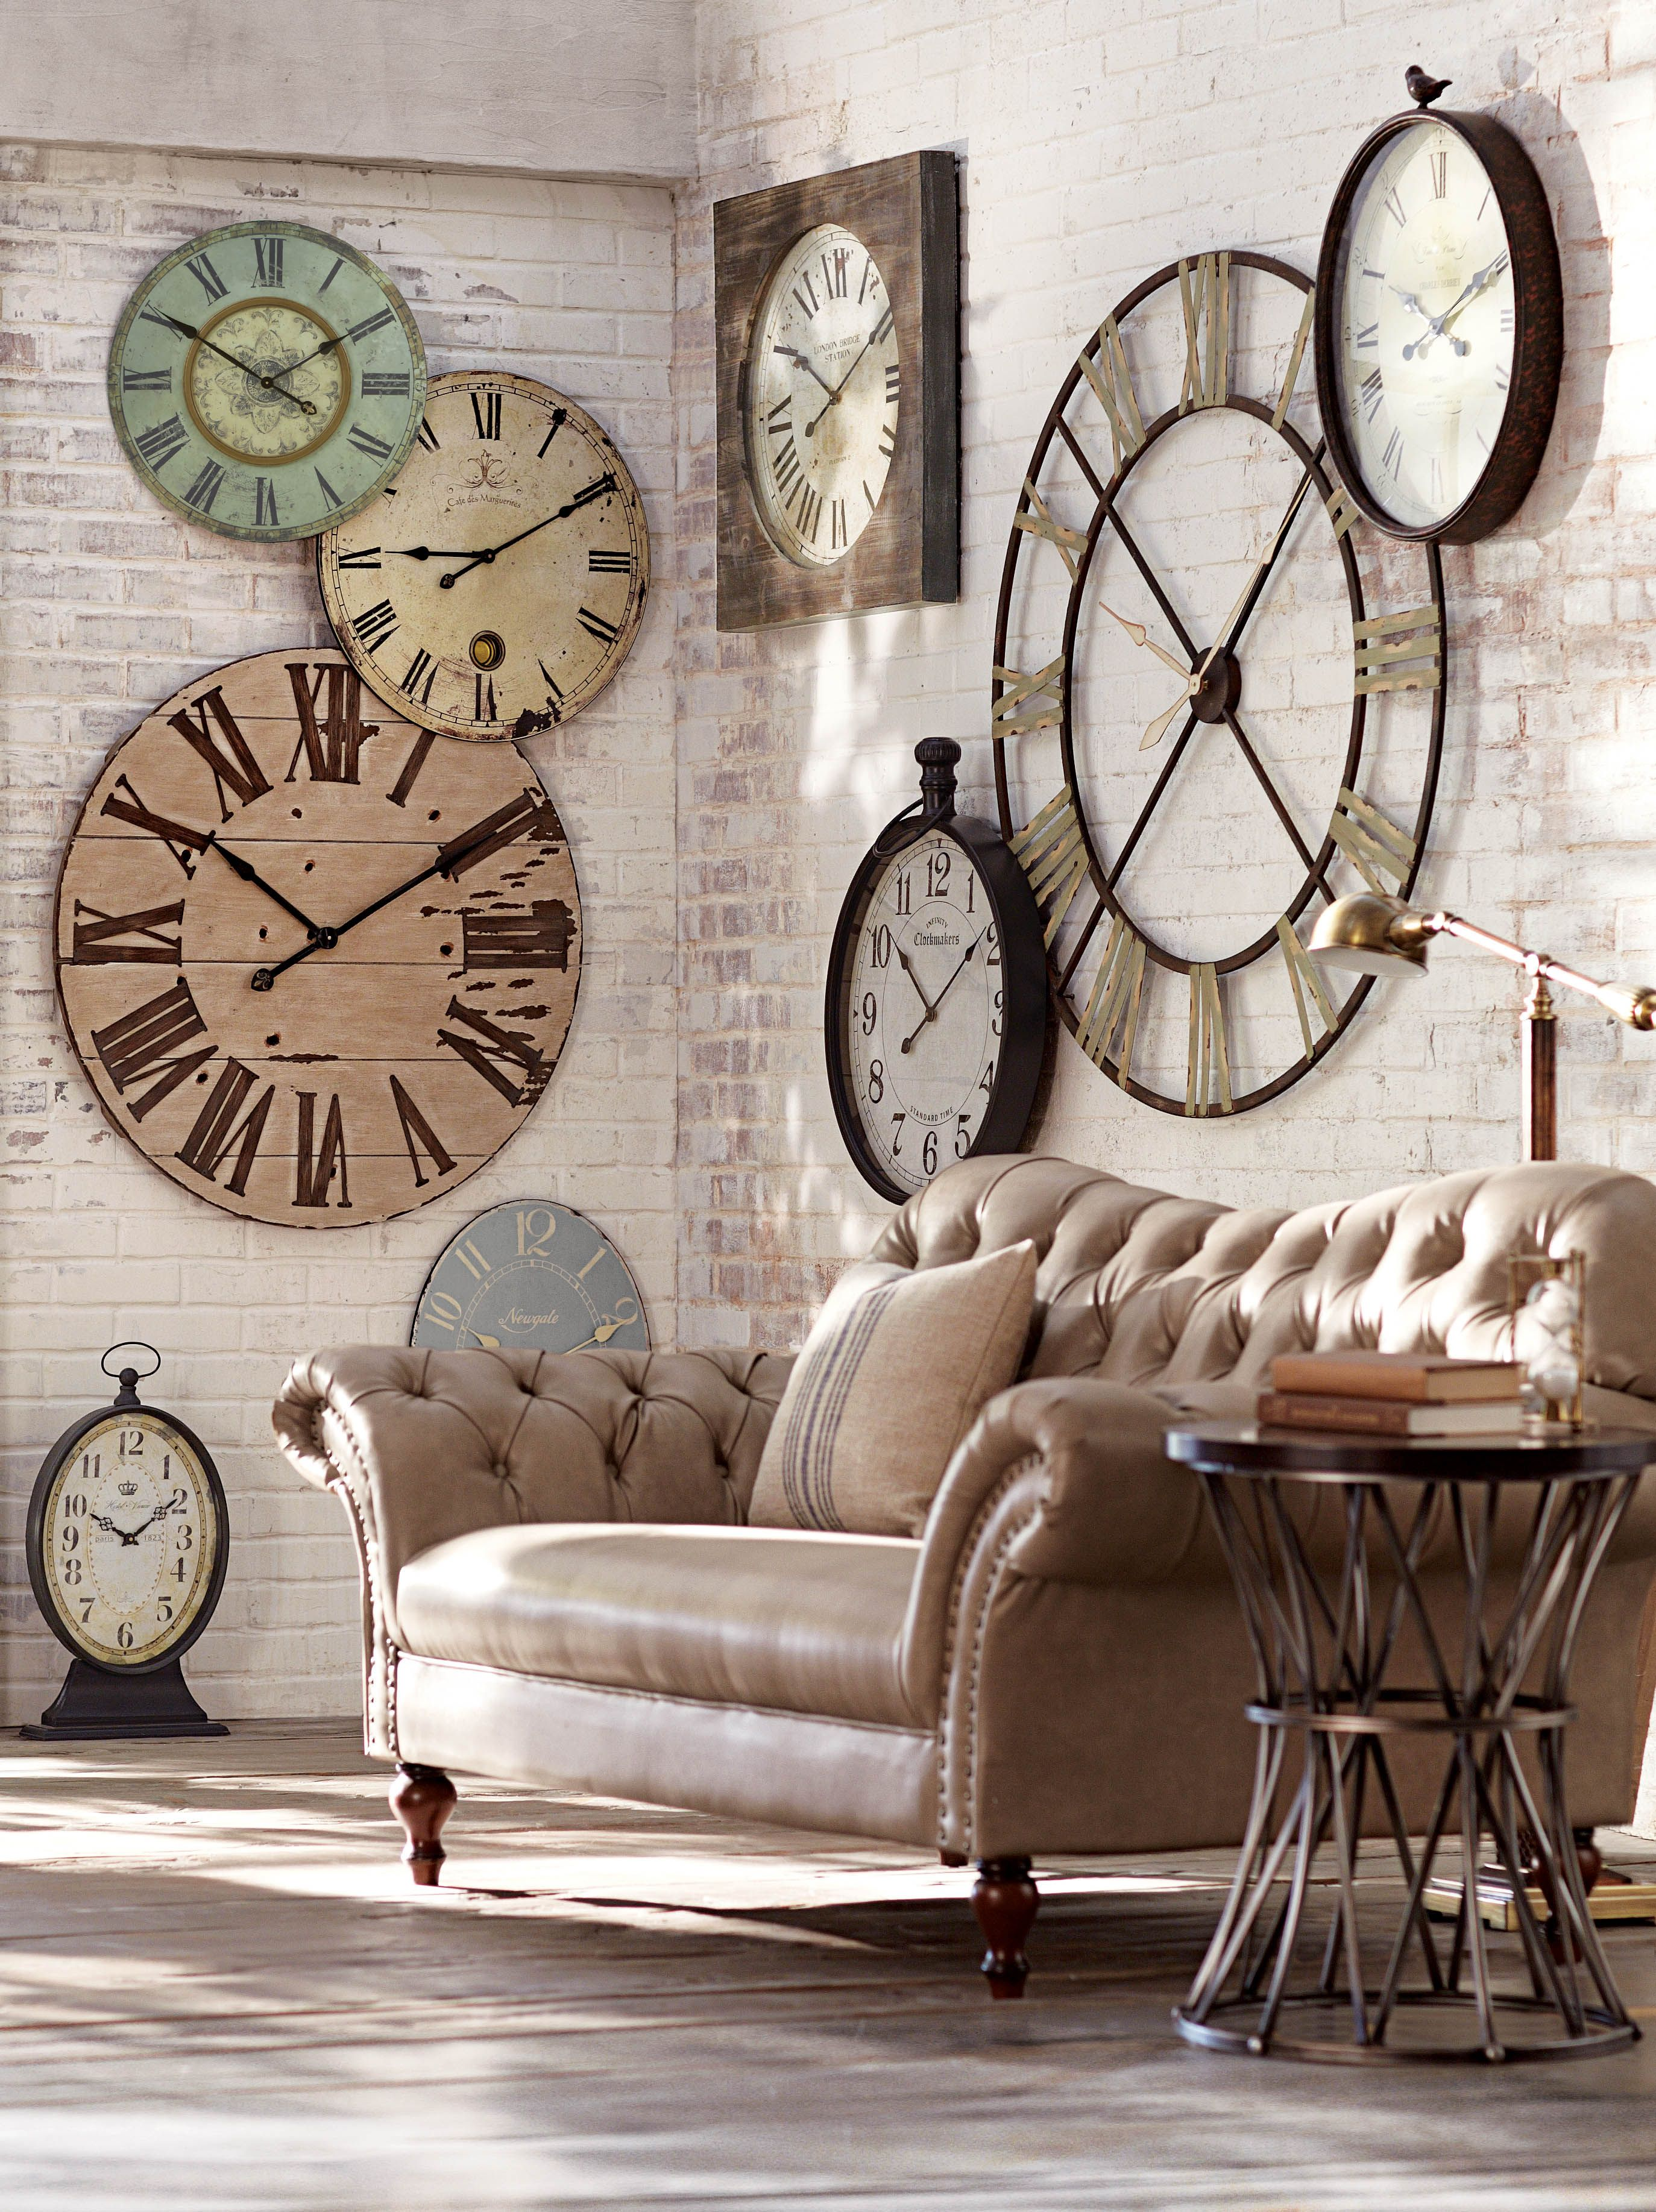 Statement Wall Clocks Is It Time For An Update Try A Statement Making Wall